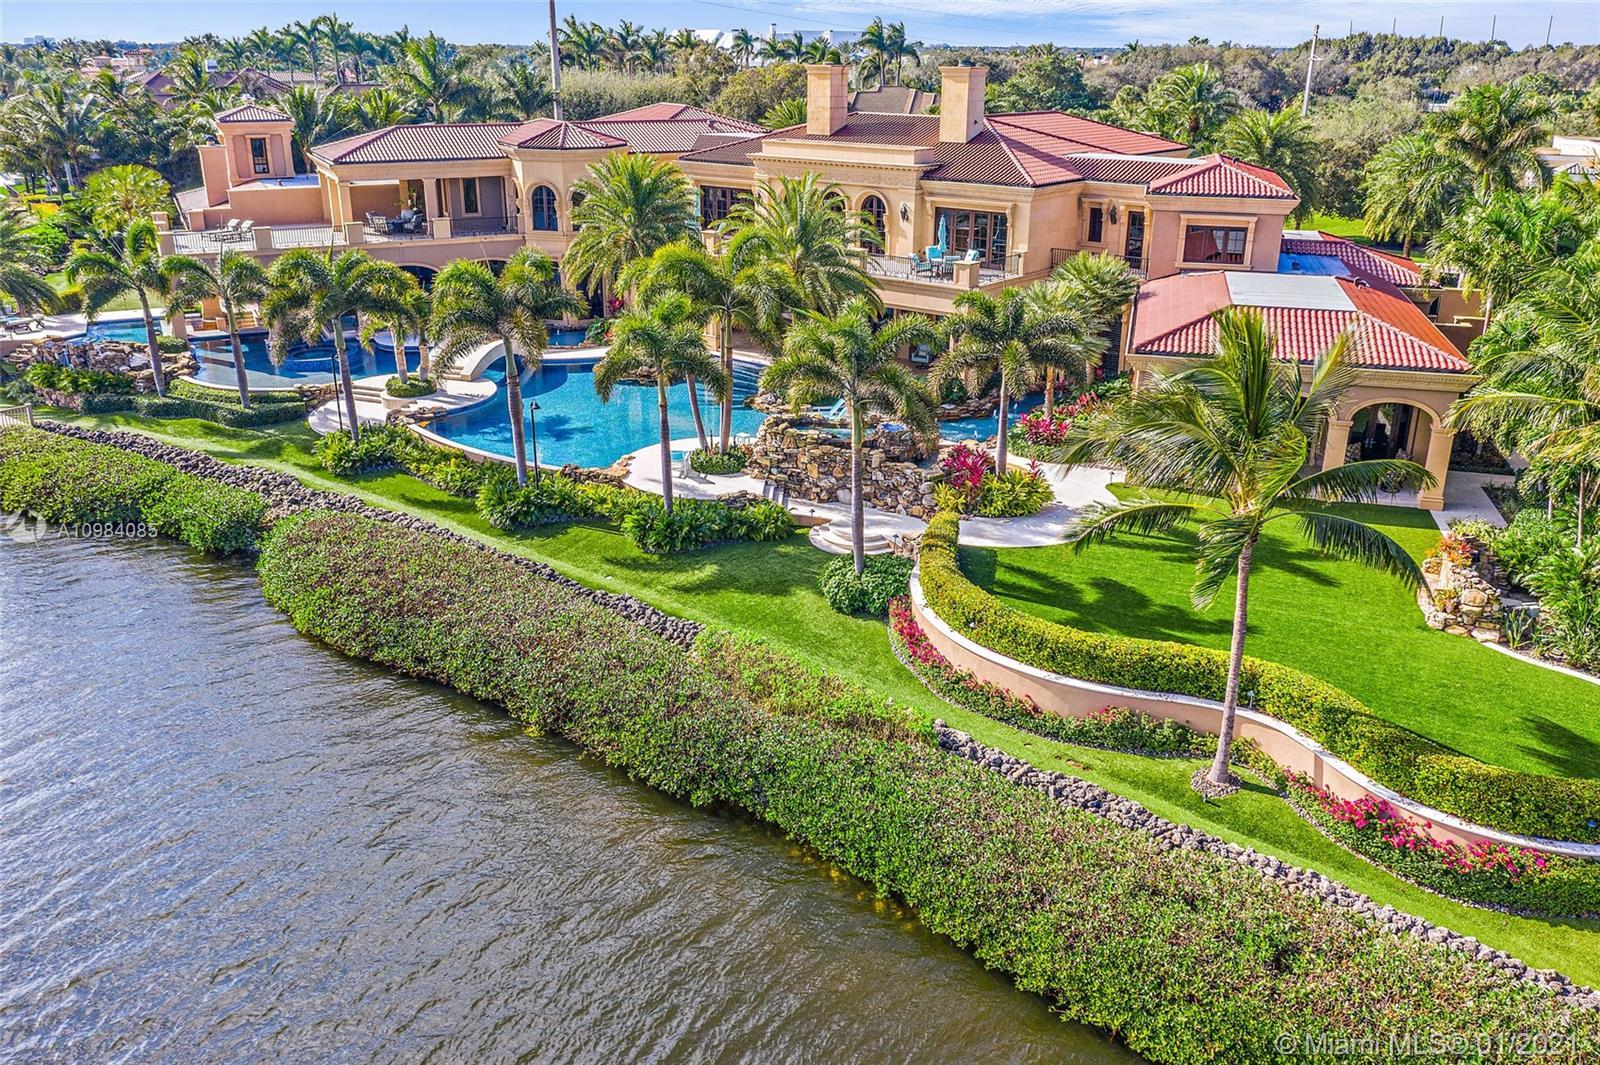 TROPHY PROPERTY The largest Intracoastal property in Admirals Cove. If you like toys this is your ho